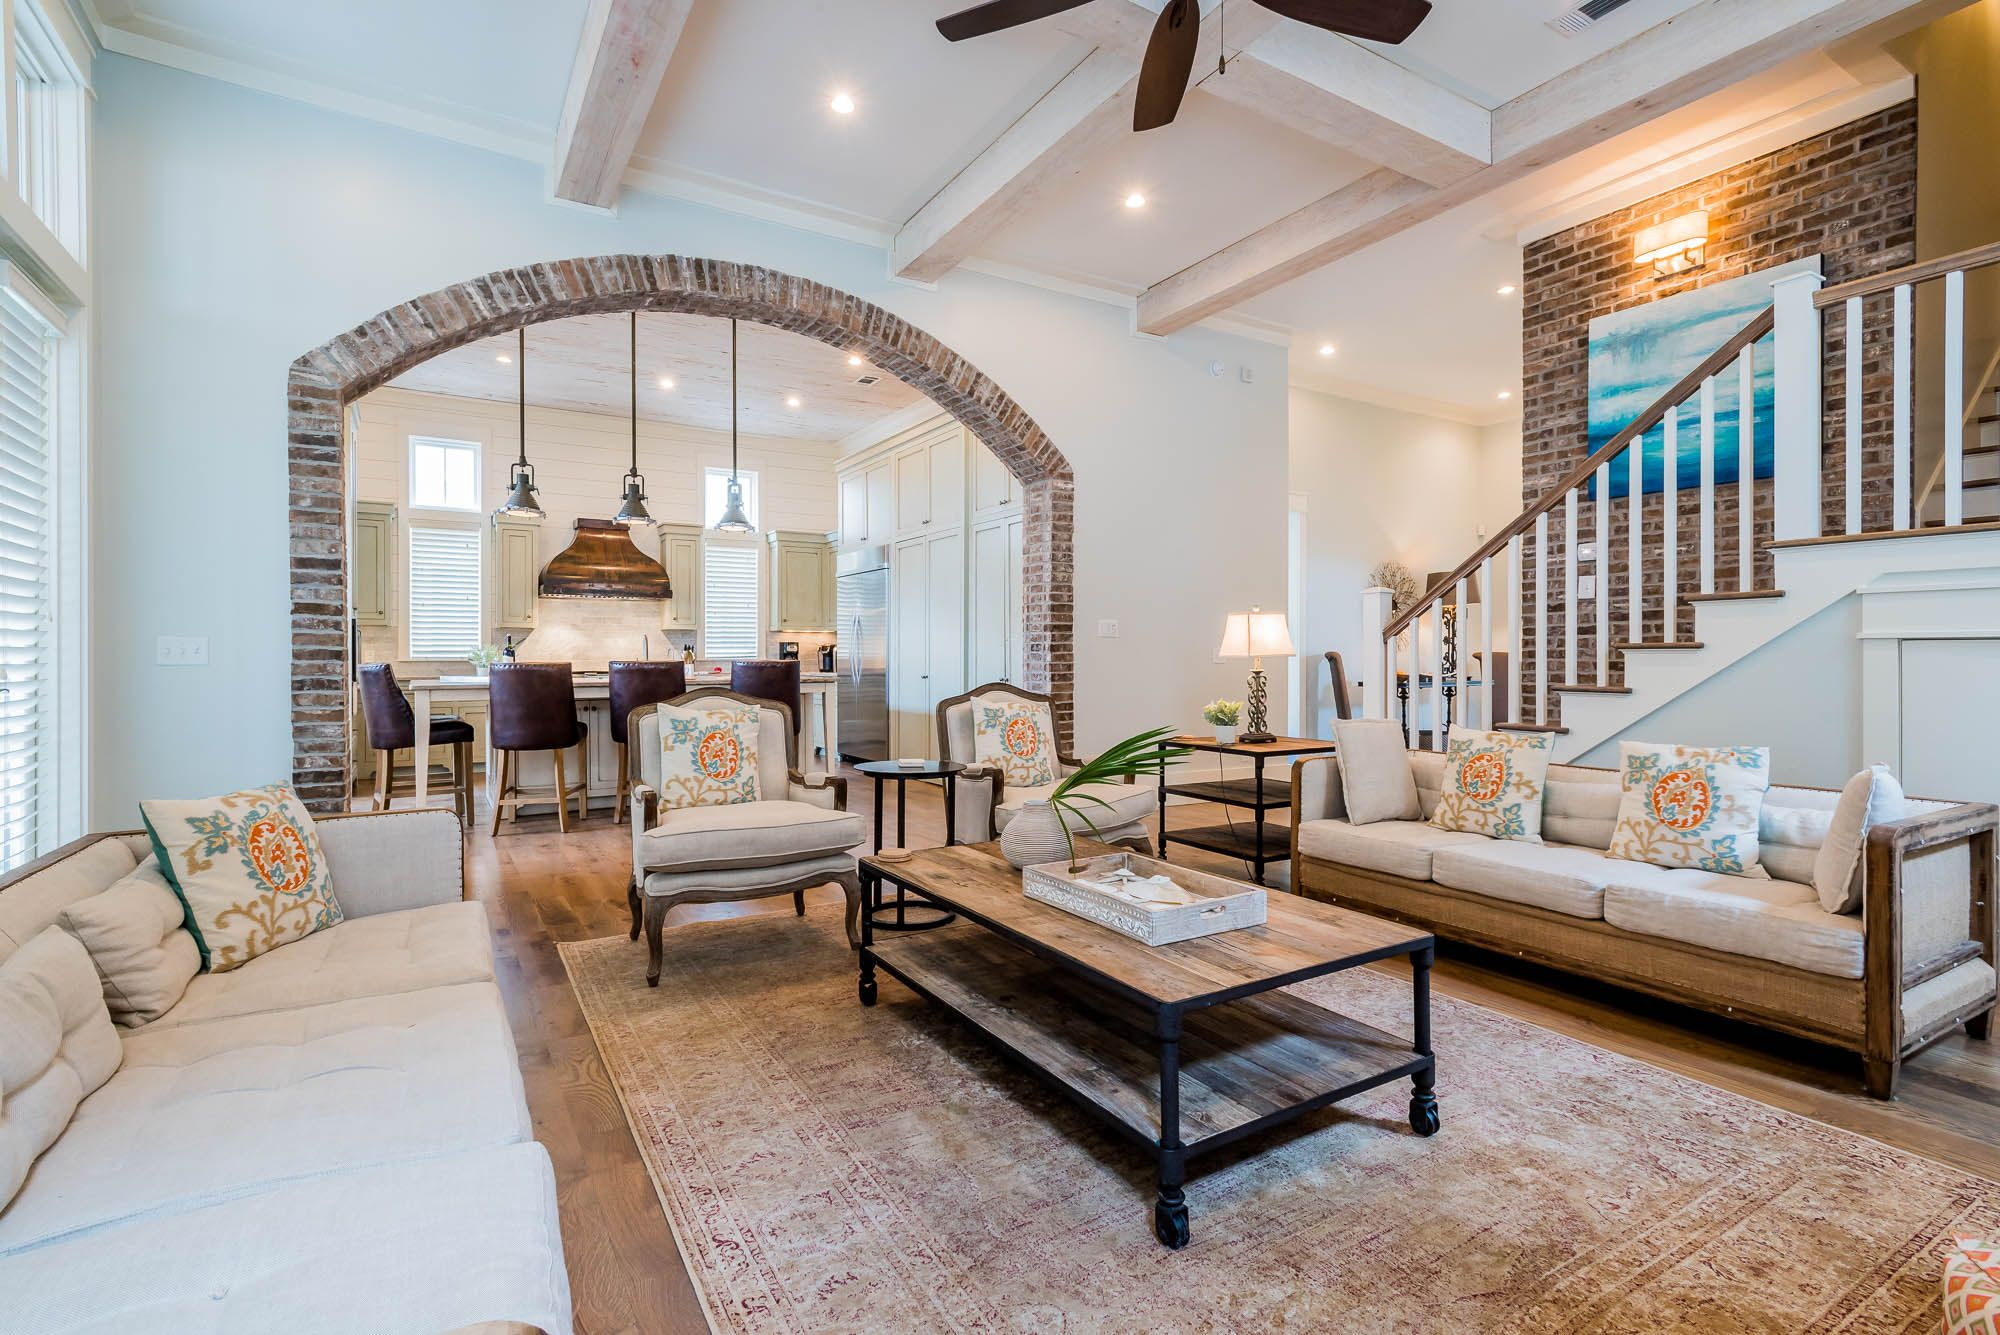 Sometimes The Interior Details Of A House Can Steal The Show We Are Absolutely In Love With These Brick Accents Bunk Beds Built In Bunk Rooms Built In Bunks